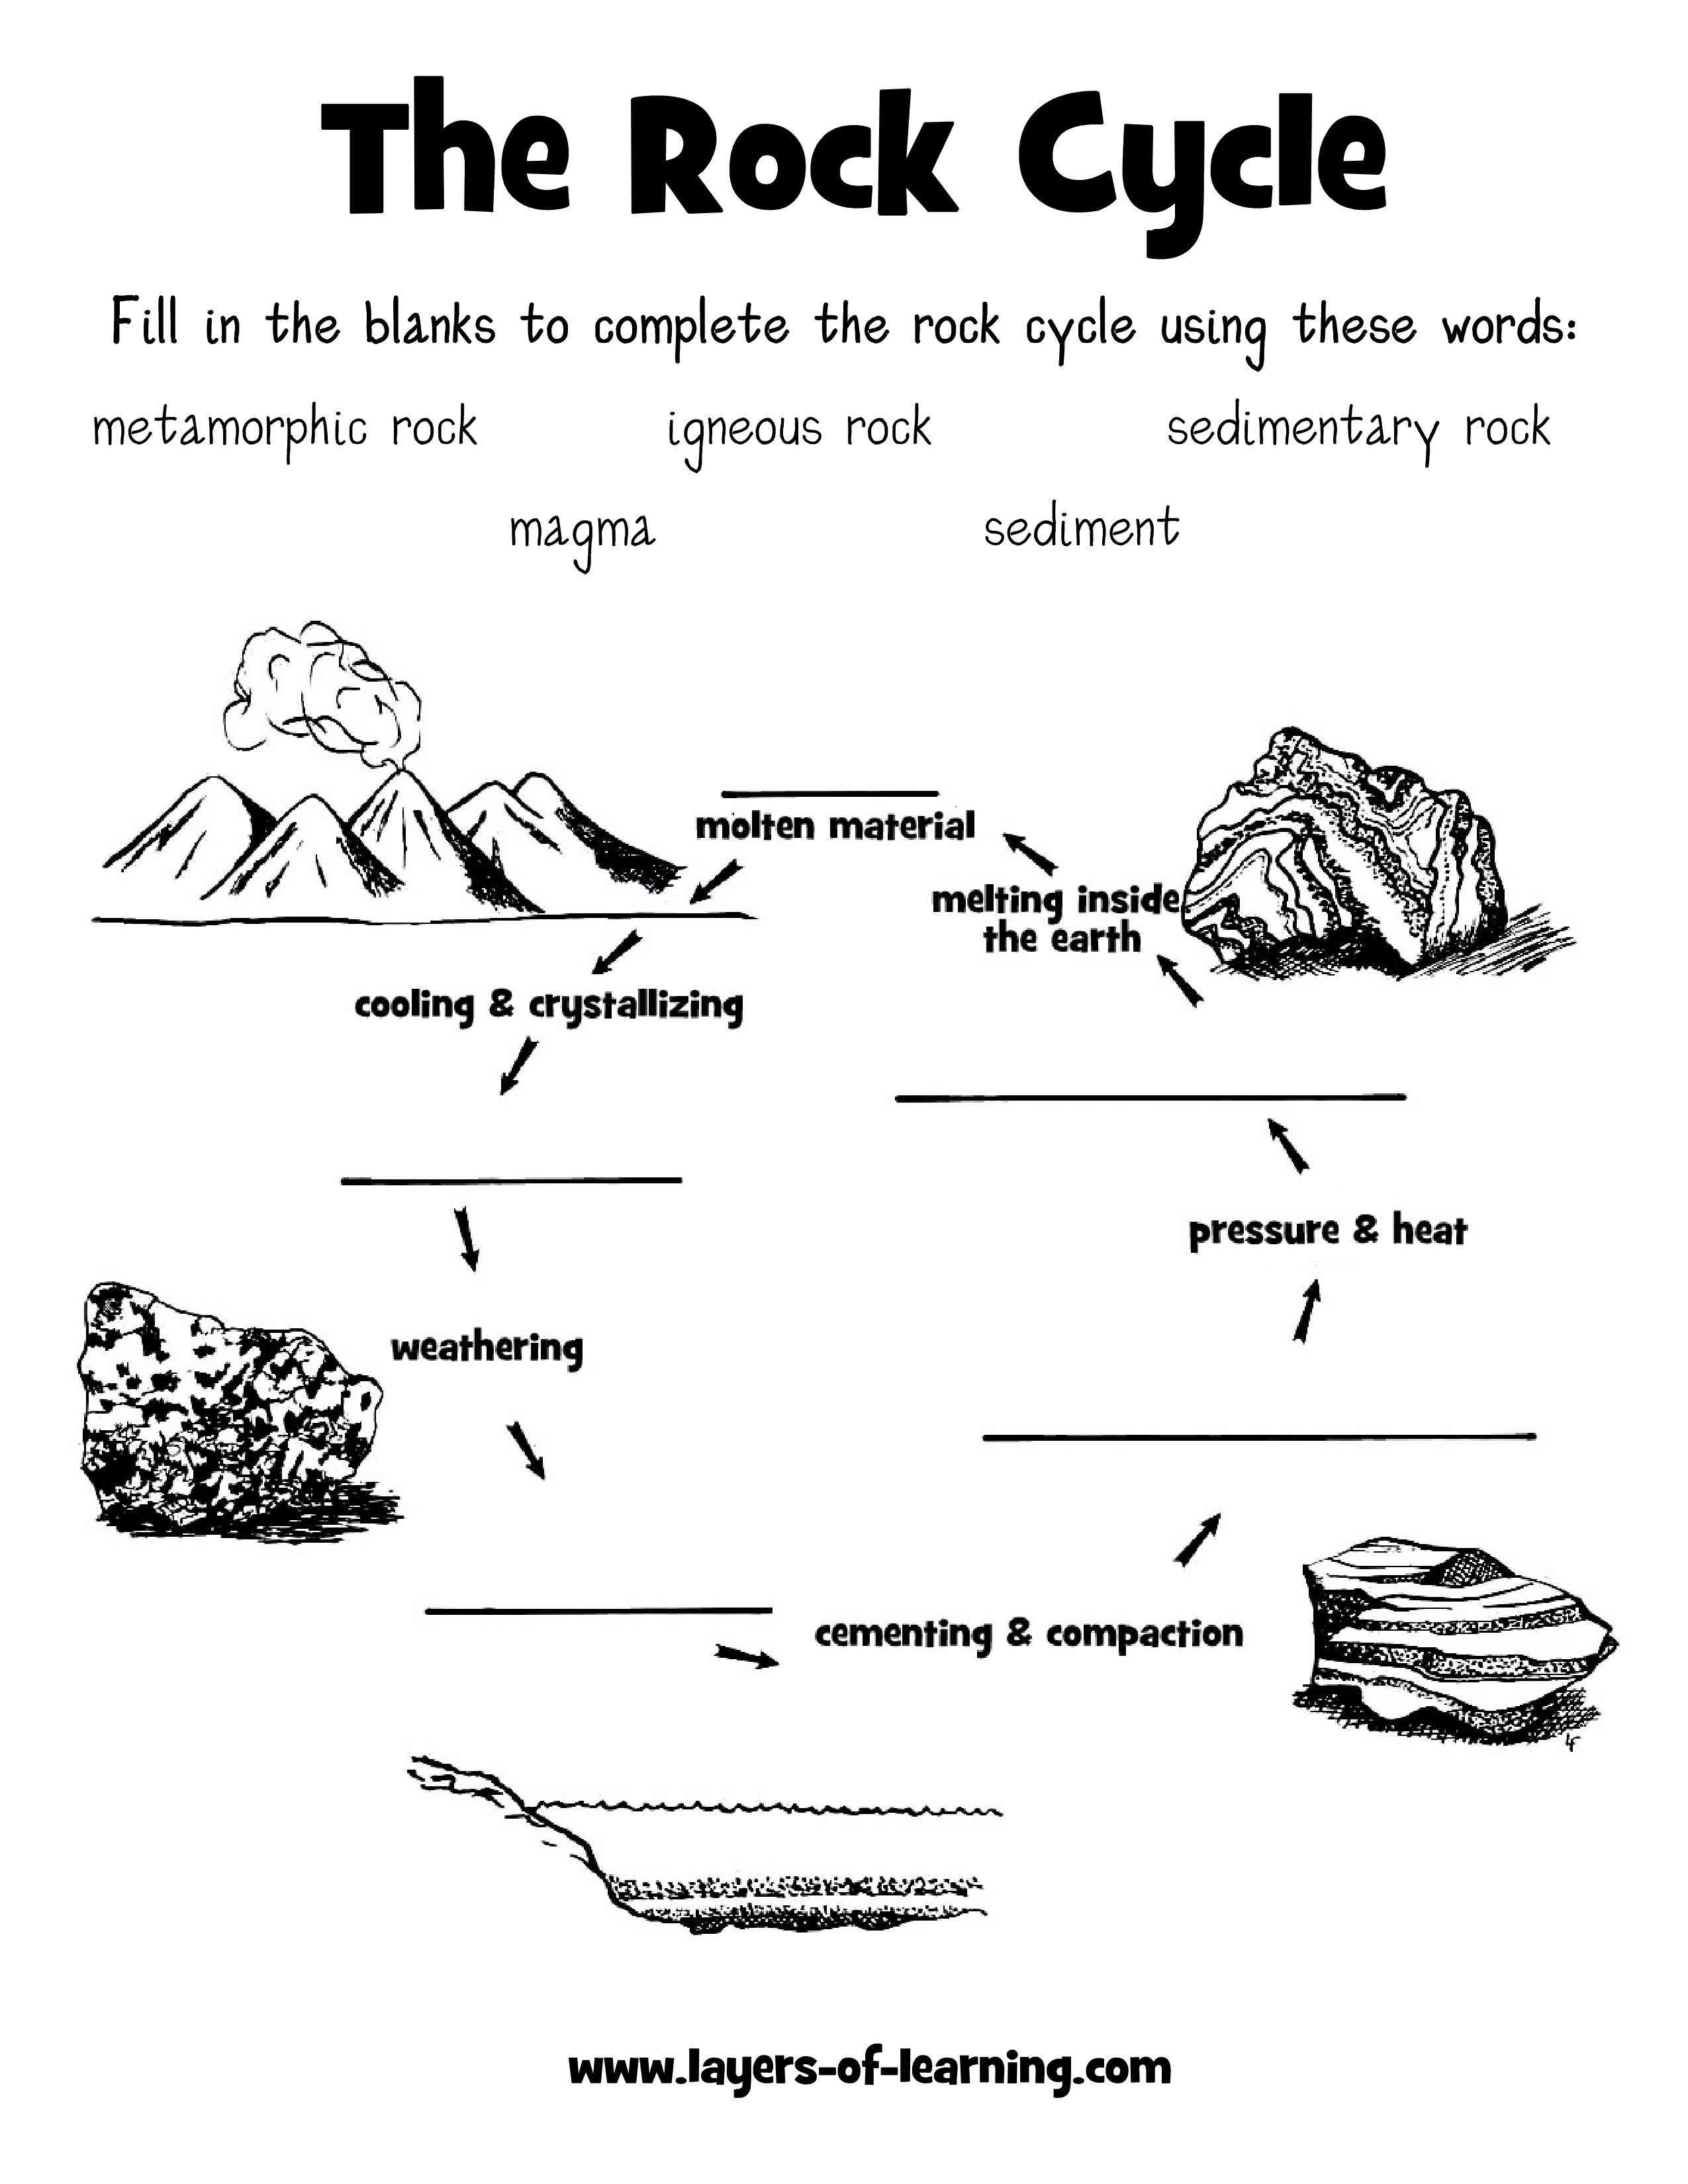 Rock Cycle Worksheet - Layers Of Learning | Science | Science - Rock Cycle Worksheets Free Printable